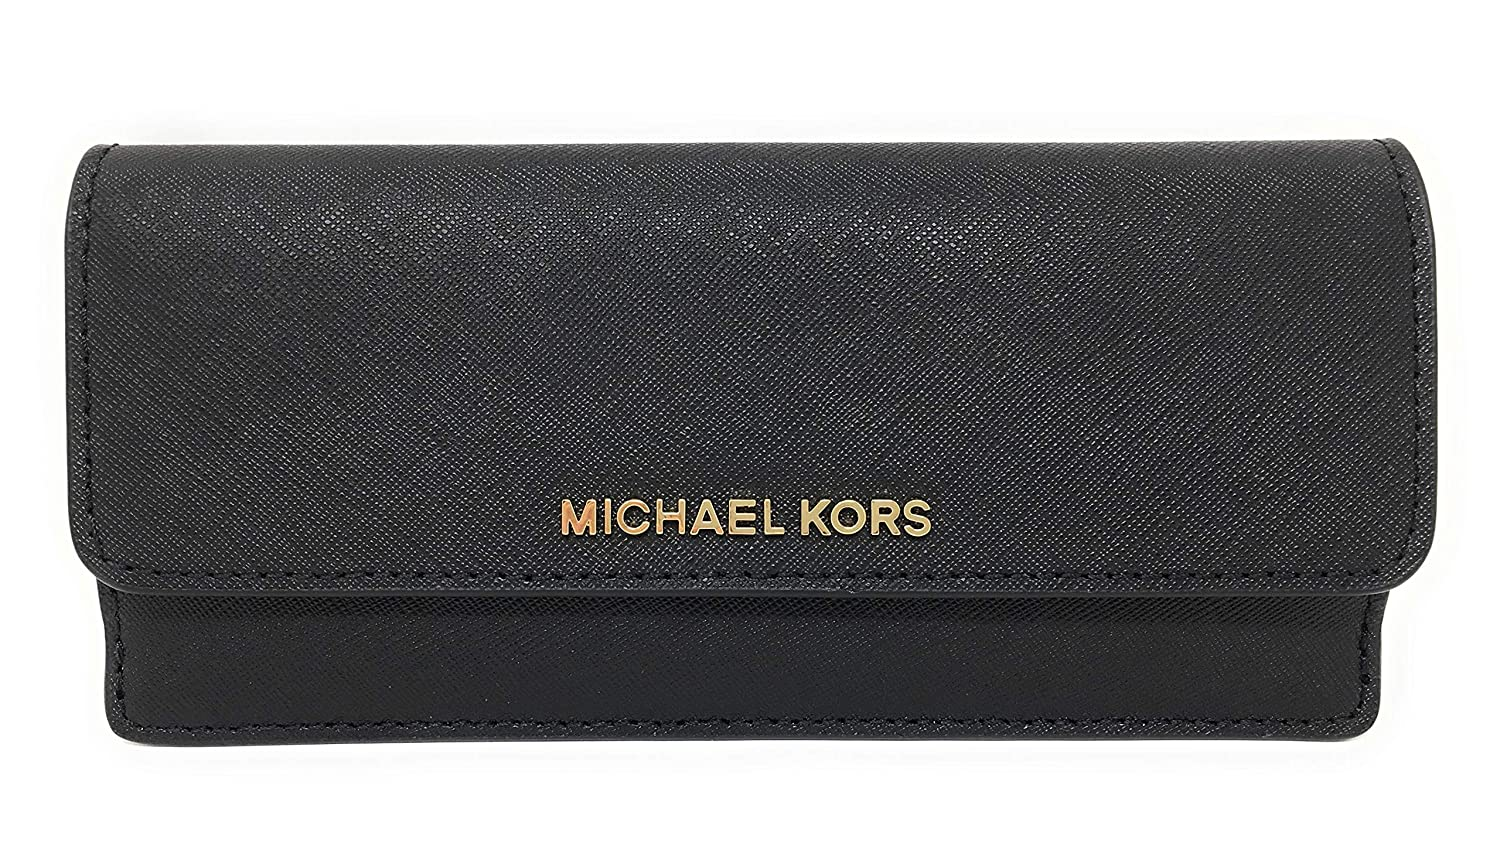 095115f5f44a Amazon.com  Michael Kors Jet Set Travel Flat Wallet Saffiano Leather ...